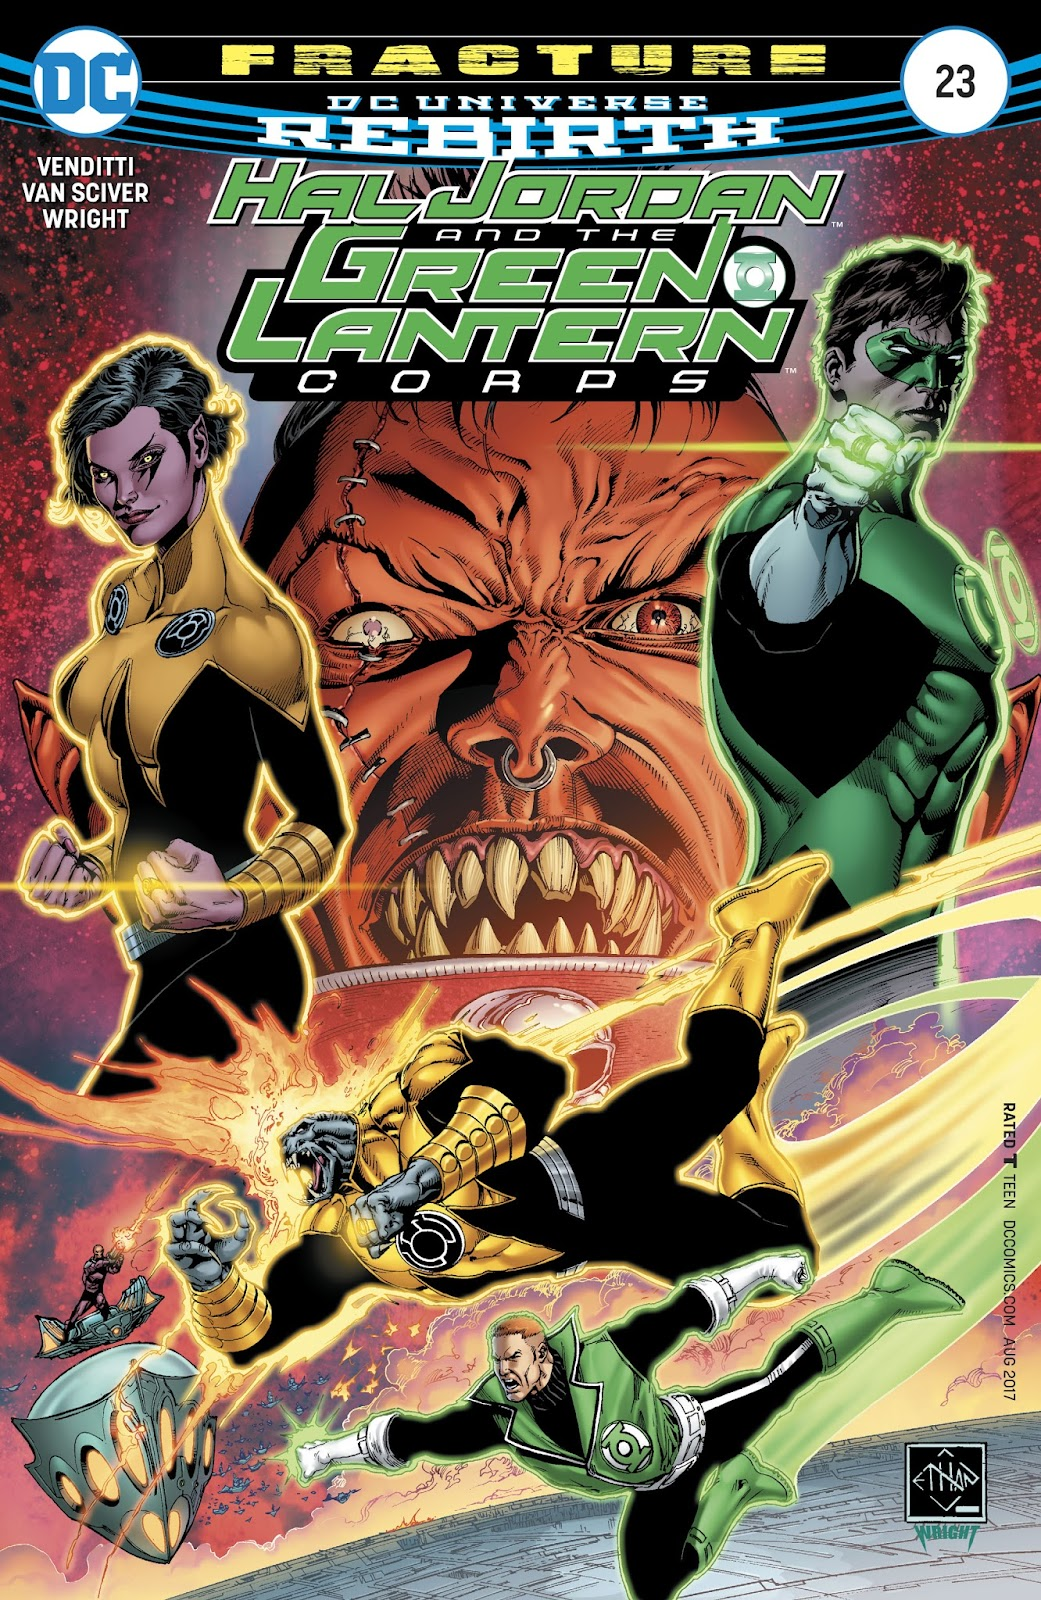 Hal Jordan & the Green Lantern Corps: Rebirth issue 23 - Page 1